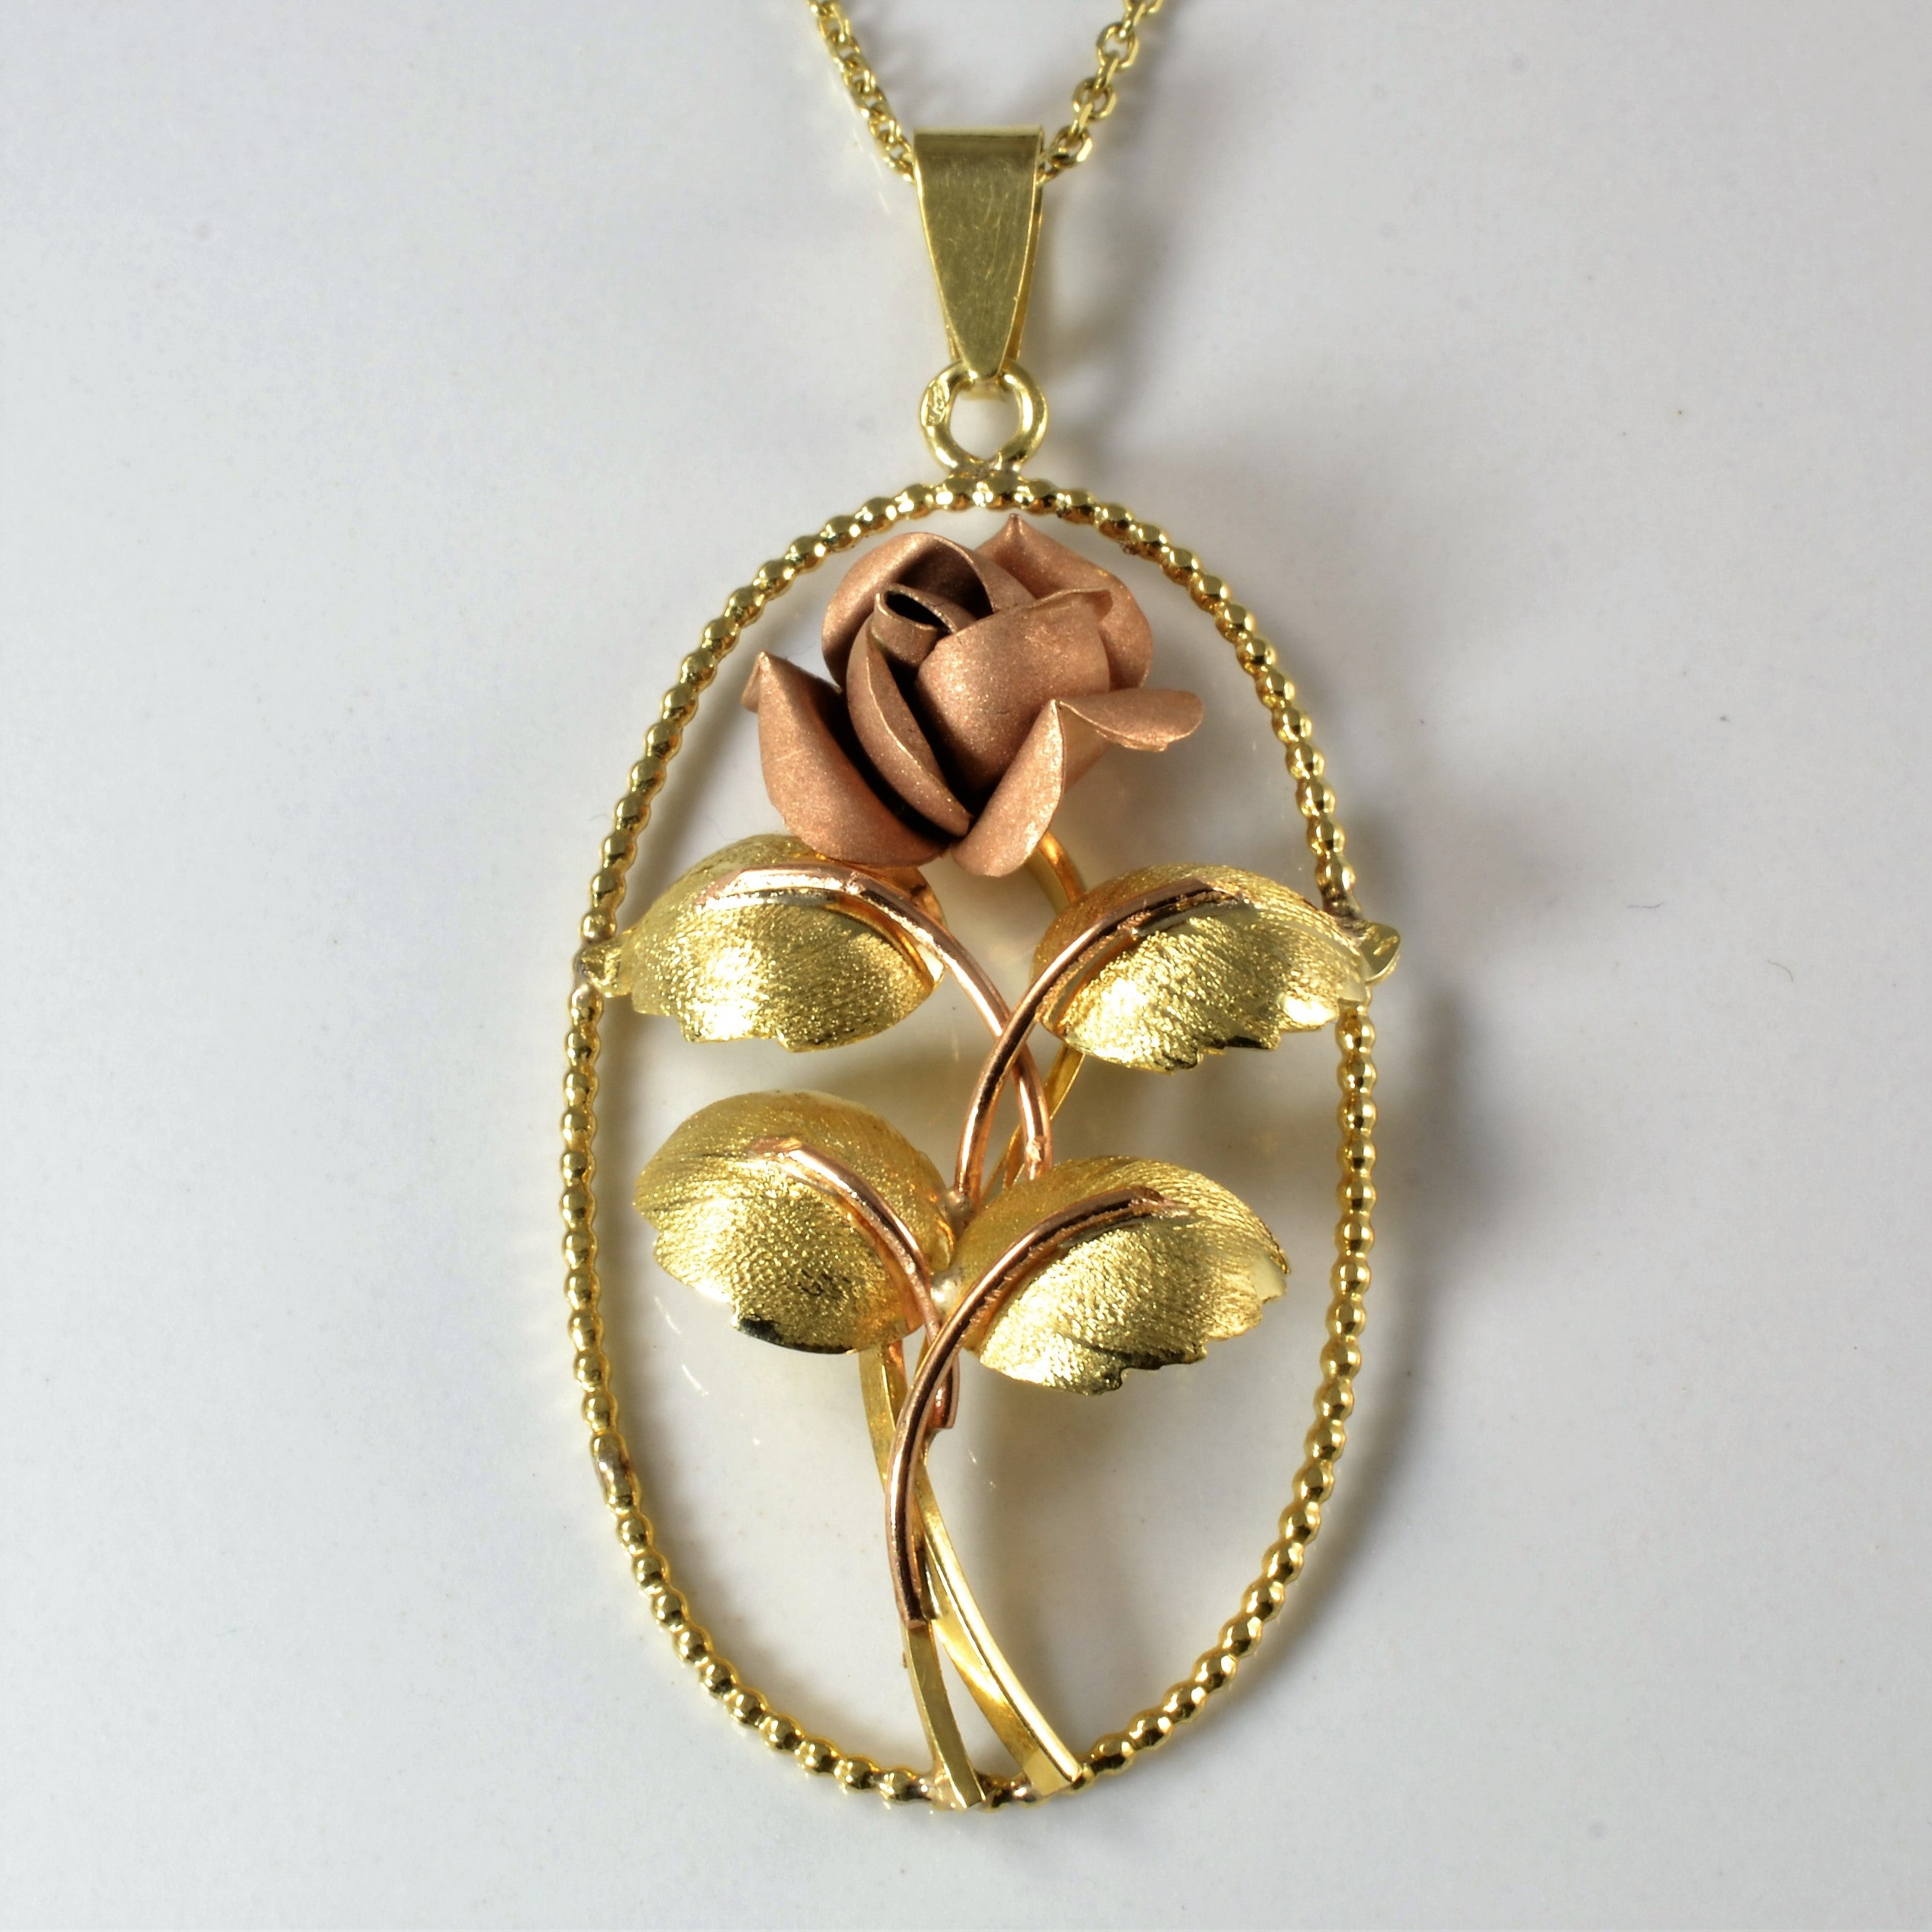 Two Tone Gold Rose Pendant Necklace | 19"